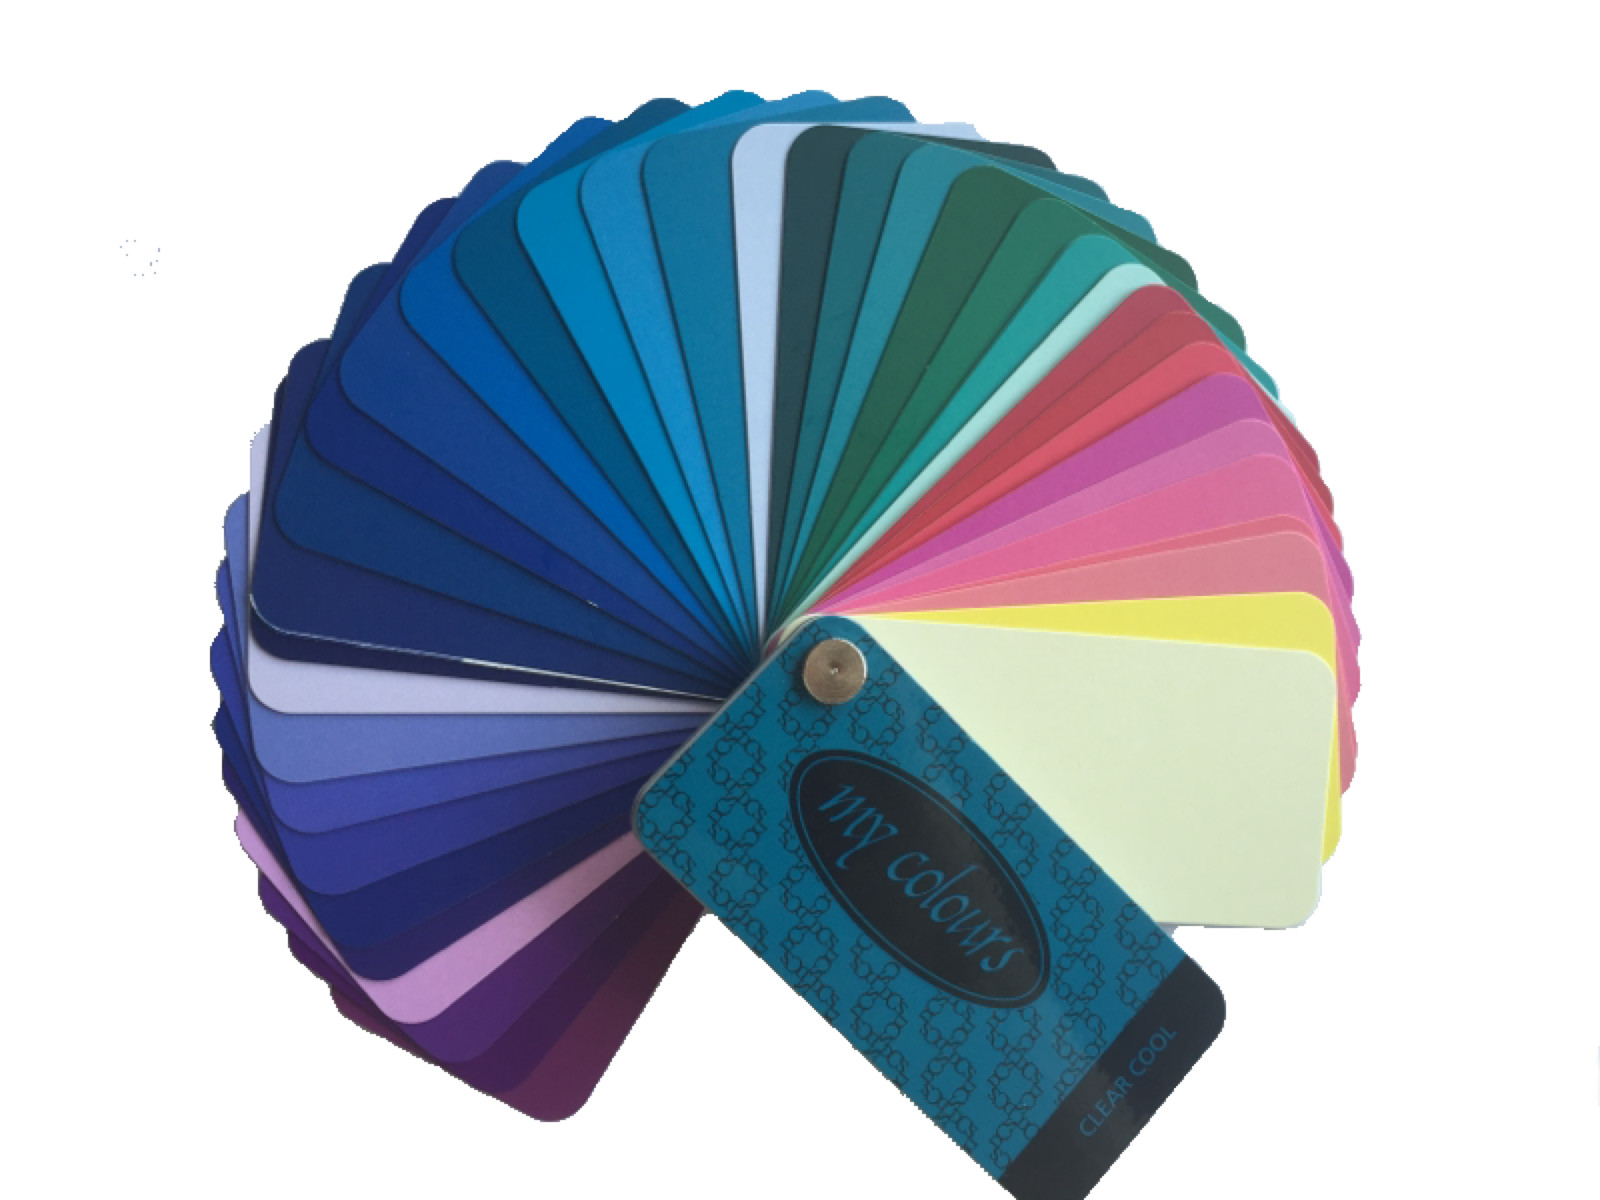 Colour fan